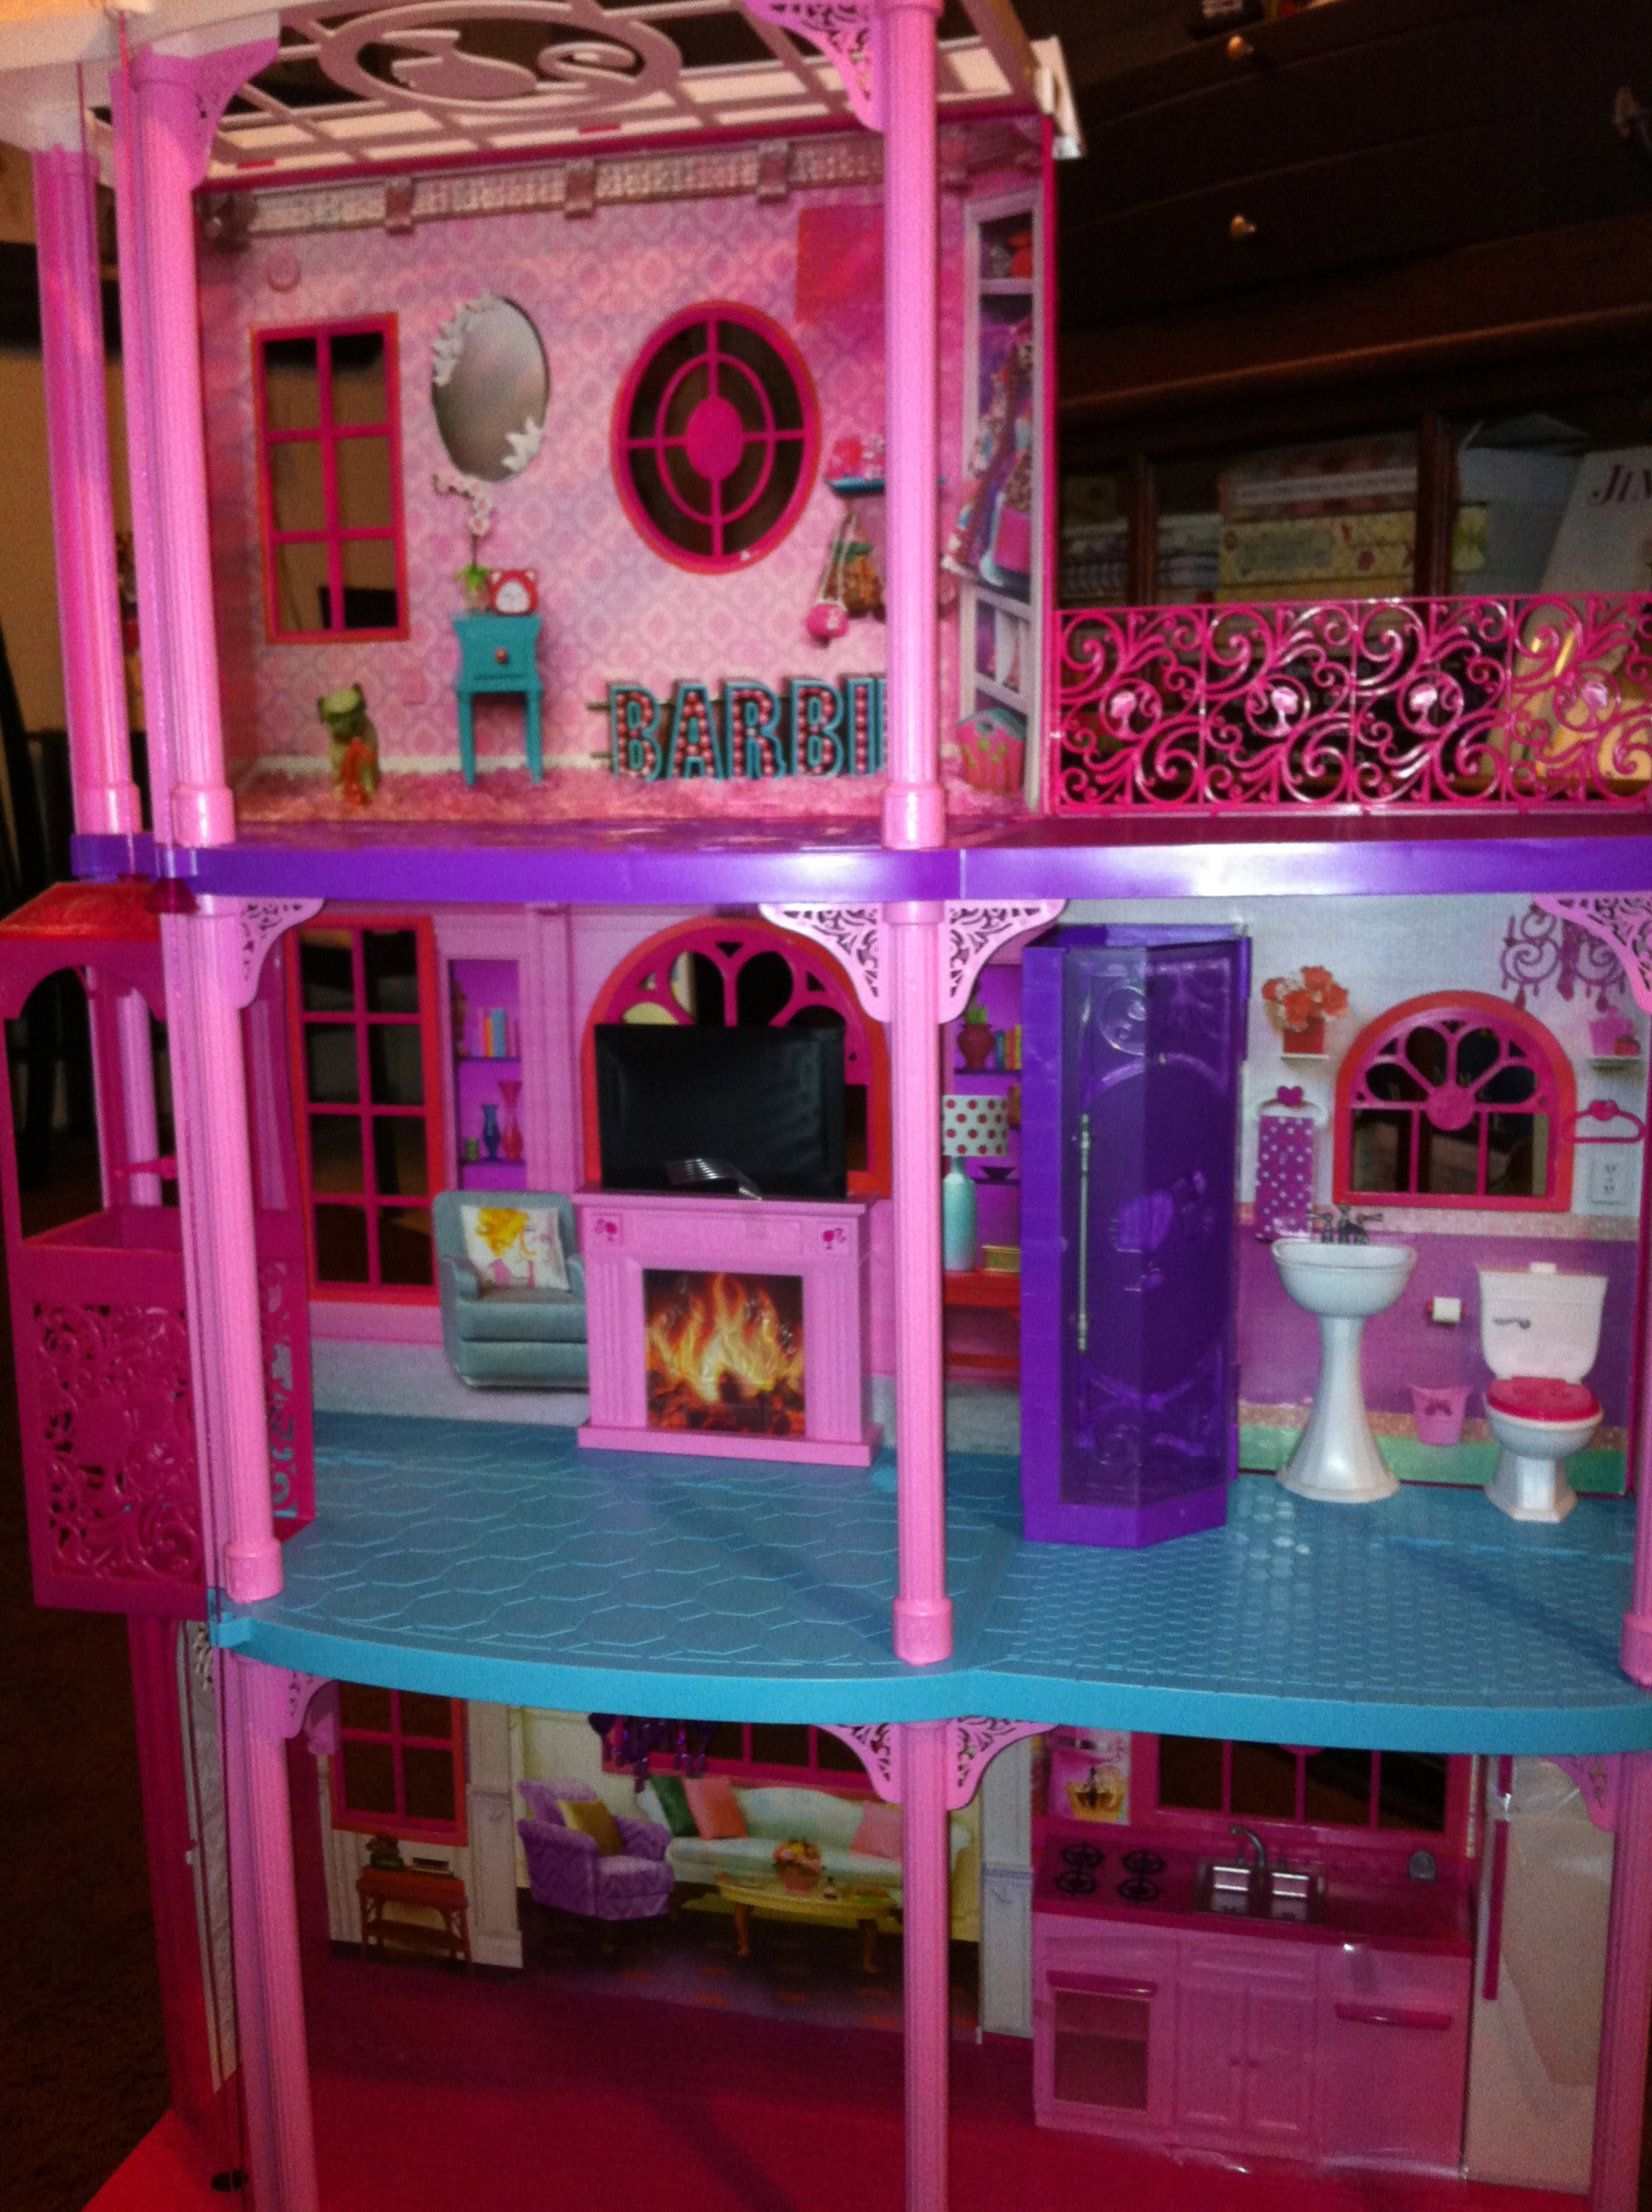 How To Build A Barbie Dreamhouse The Best Google Has To Offer